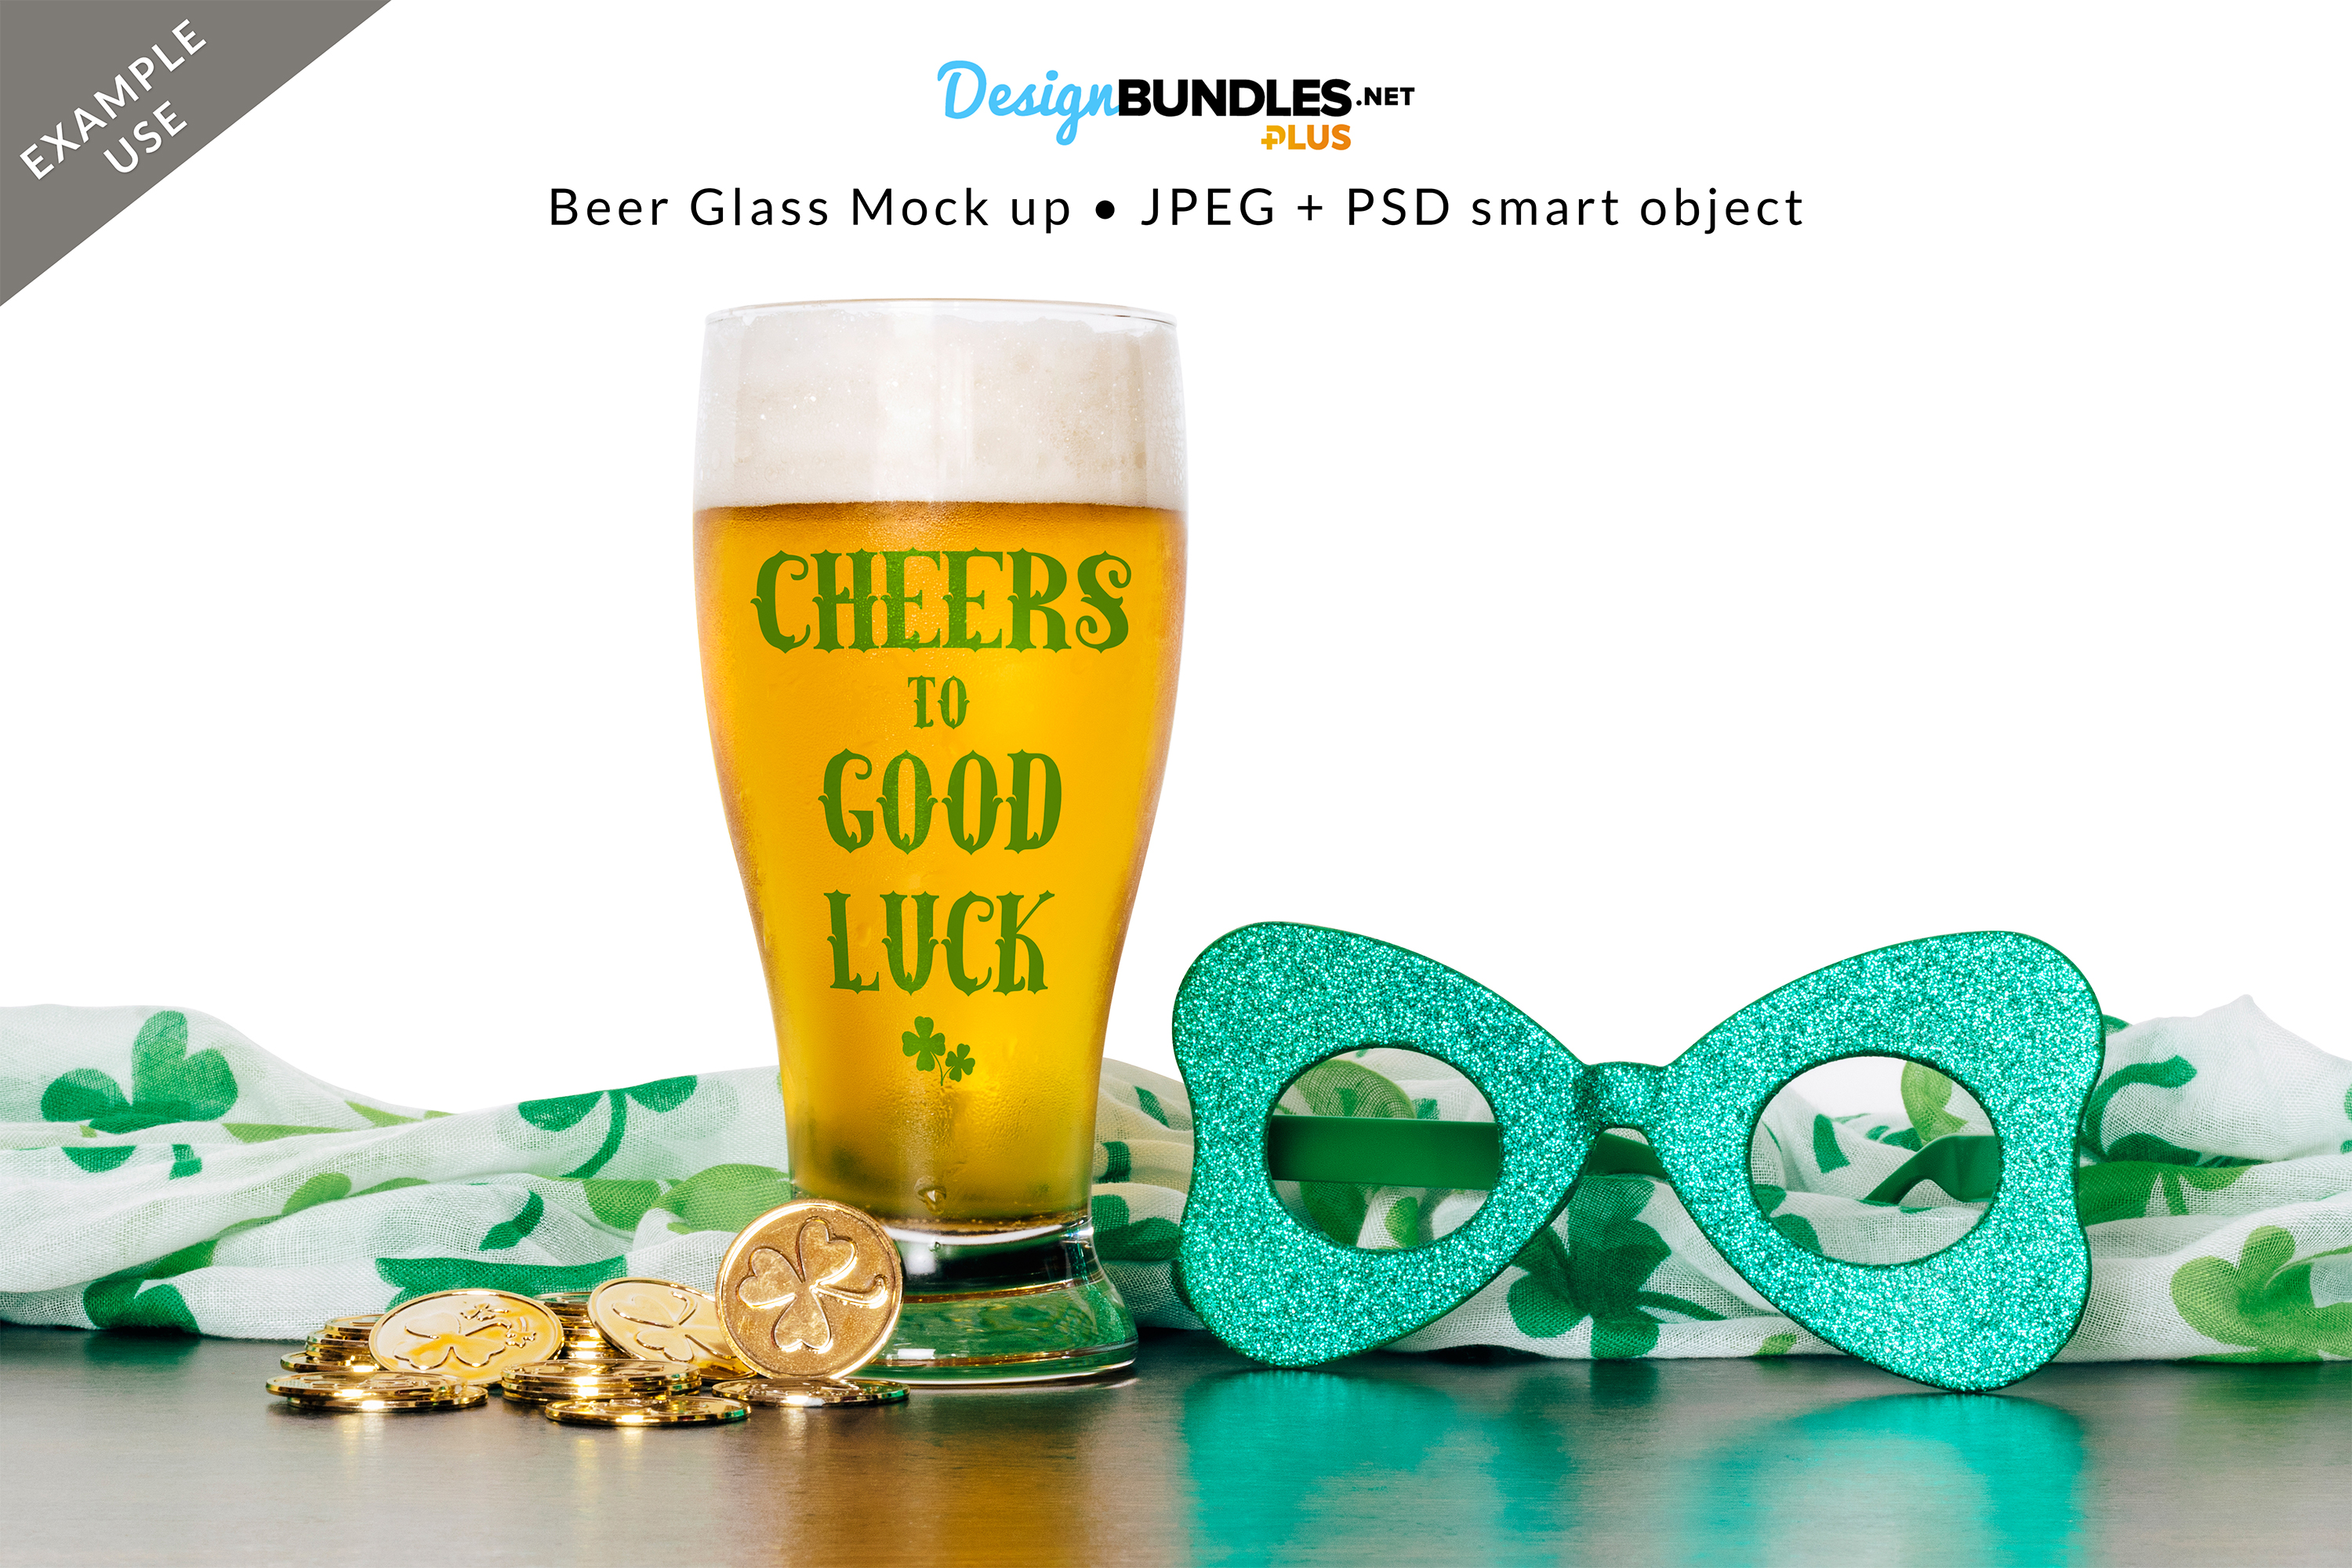 Beer Glass Mock up example image 2